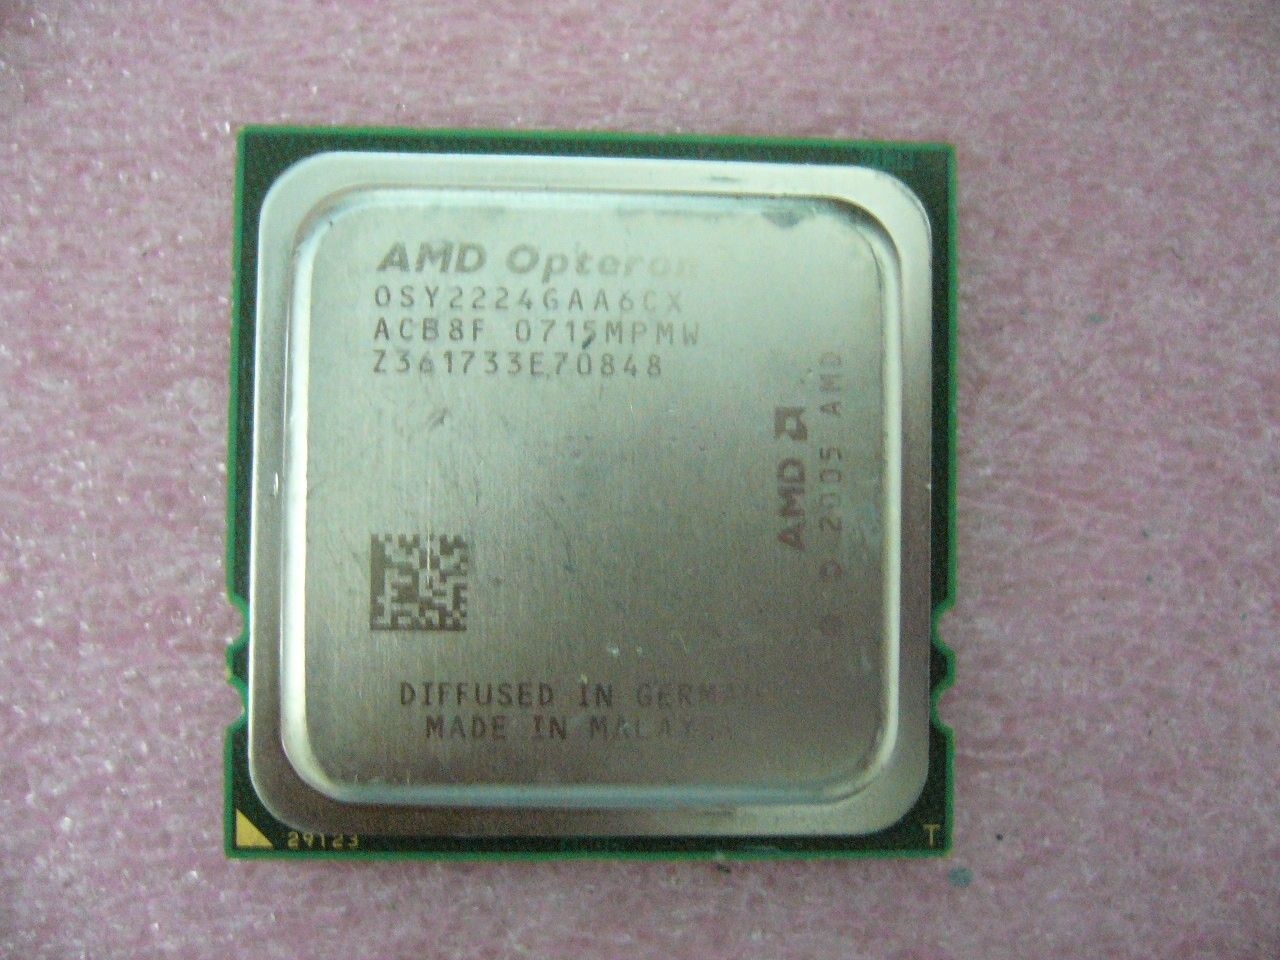 QTY 1x AMD Opteron 2224 SE 3.2 GHz Dual-Core (OSY2224GAA6CX) CPU Socket F 1207